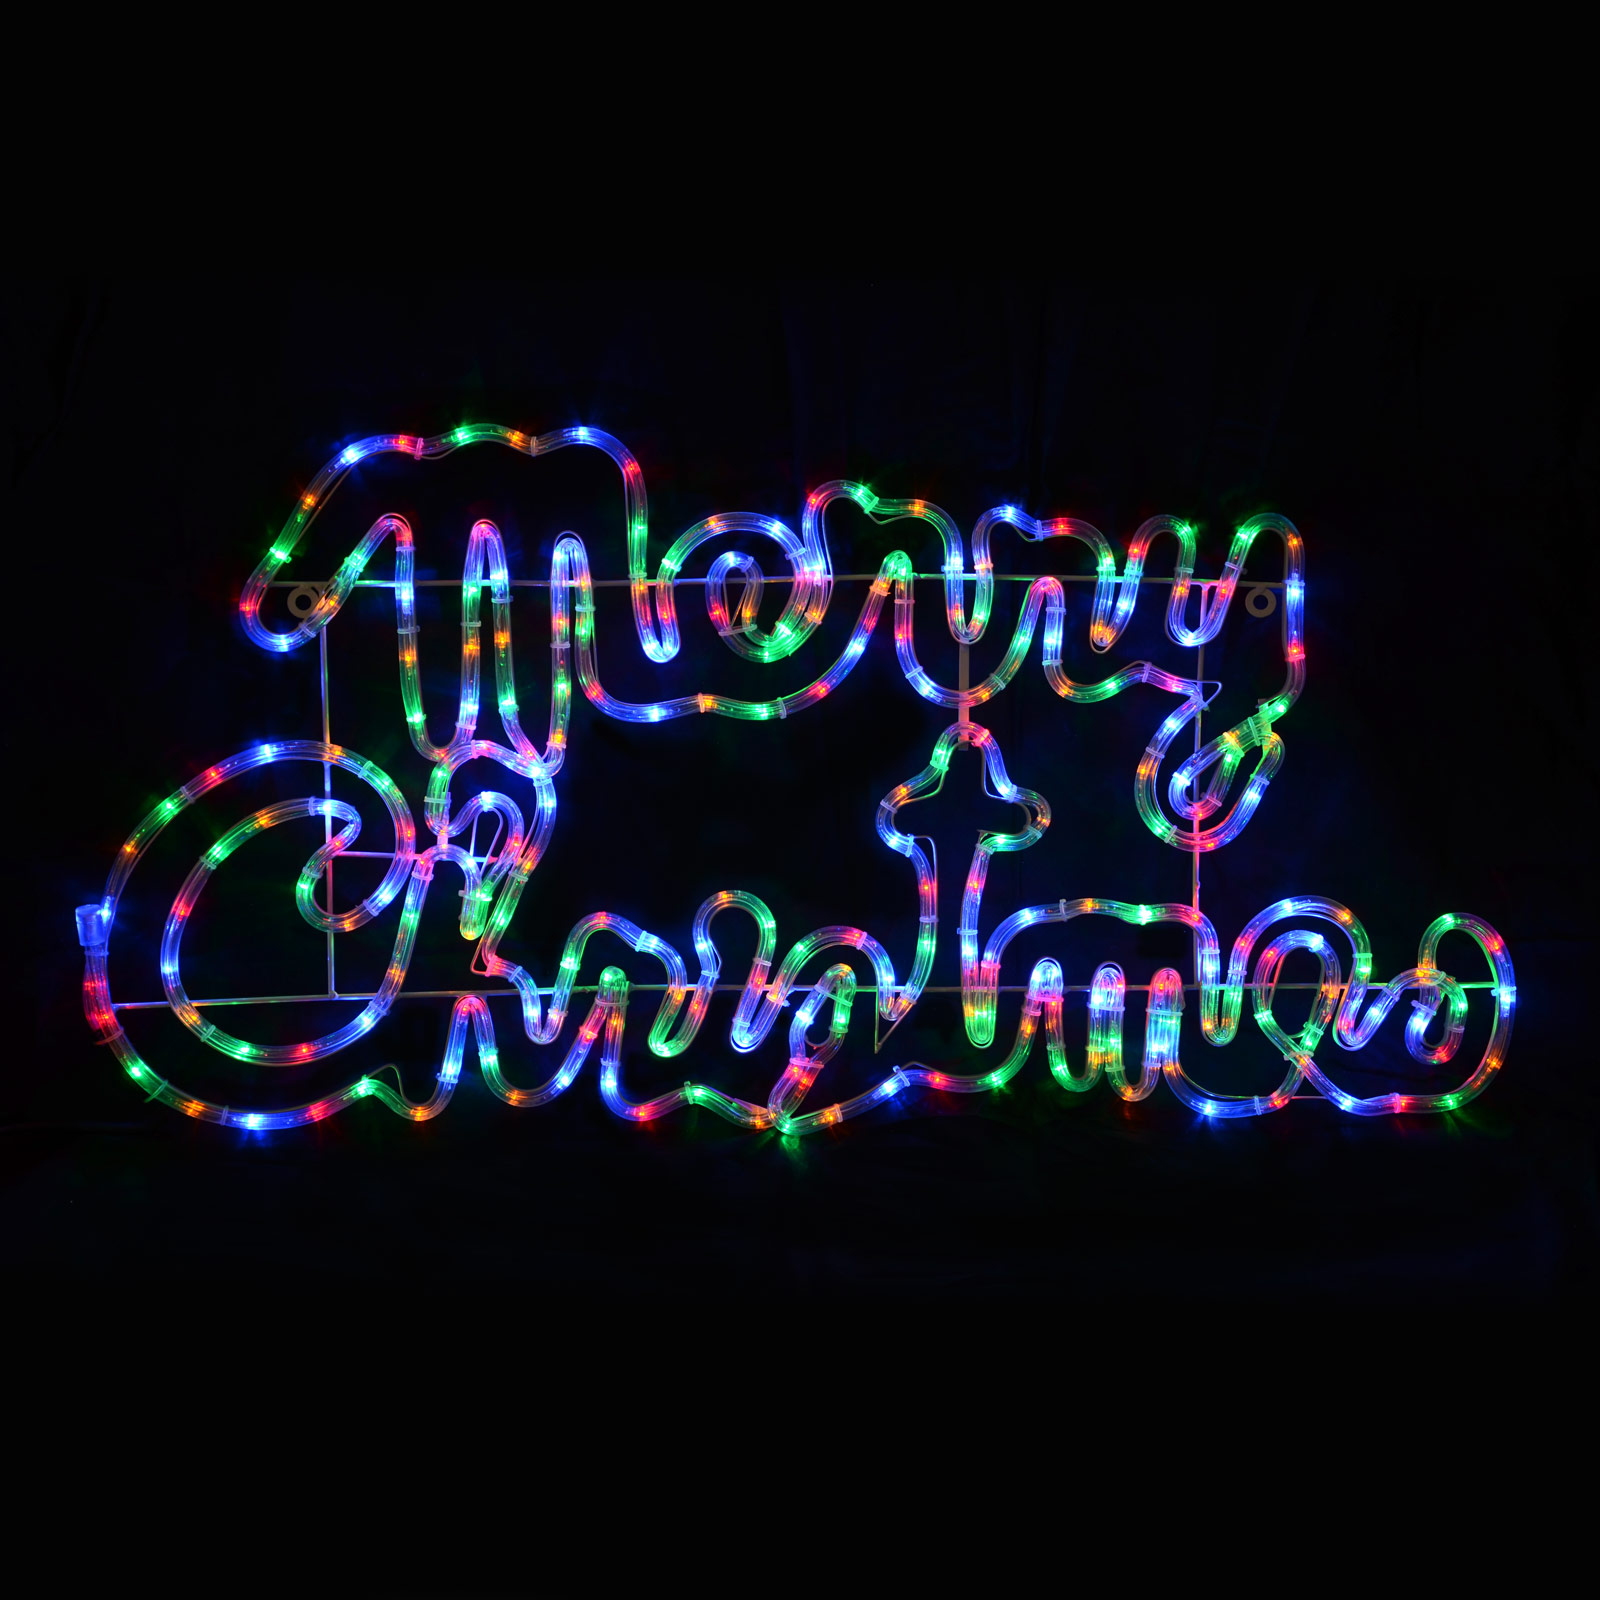 Merry Christmas Decorations Outdoor : Large multi led rope light merry christmas sign decoration